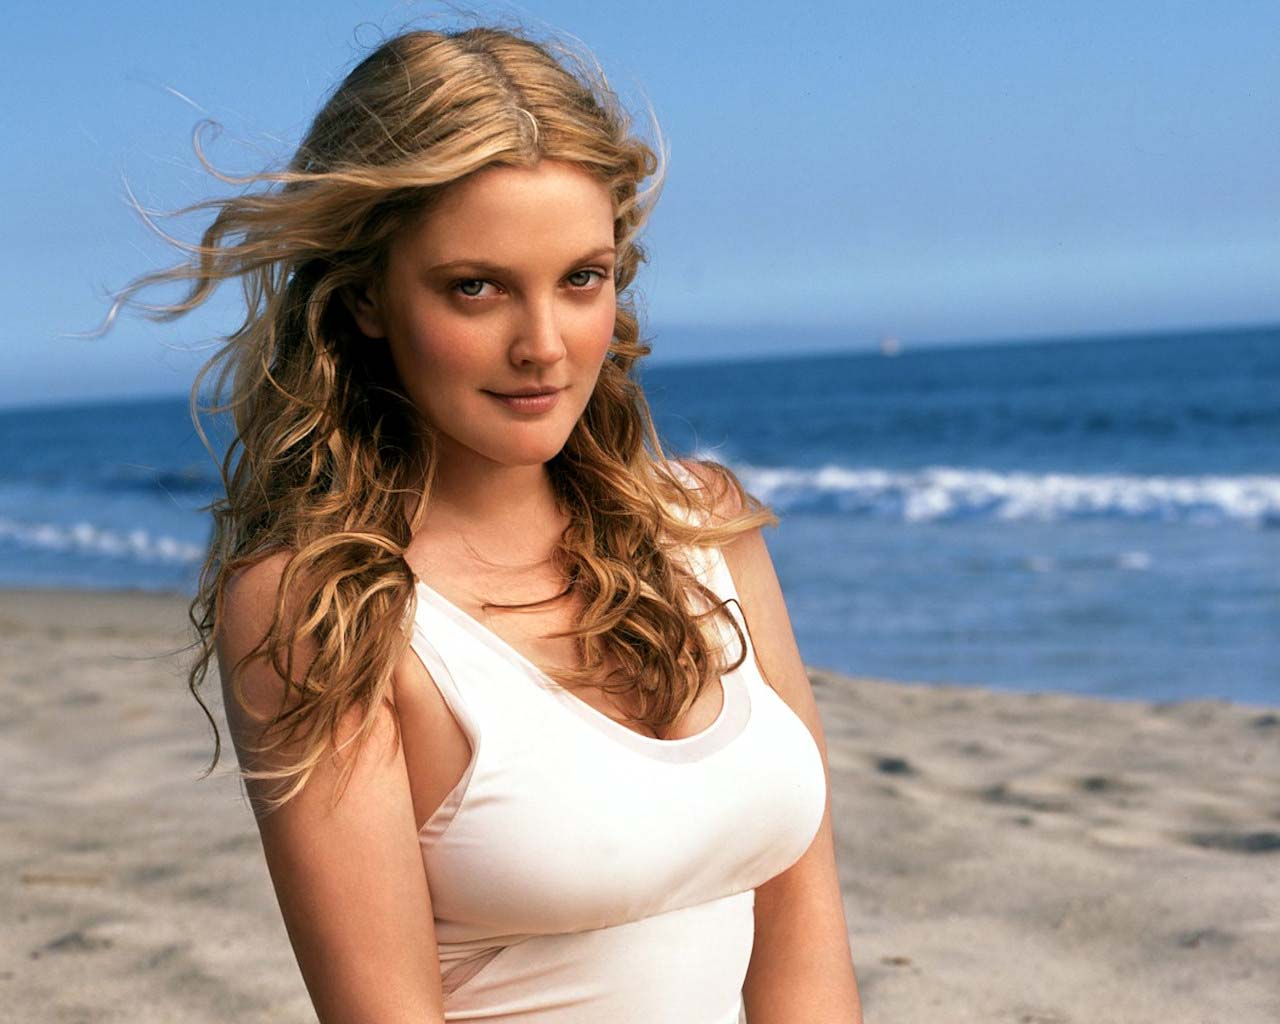 Hot drew barrymore wallpapers photo images